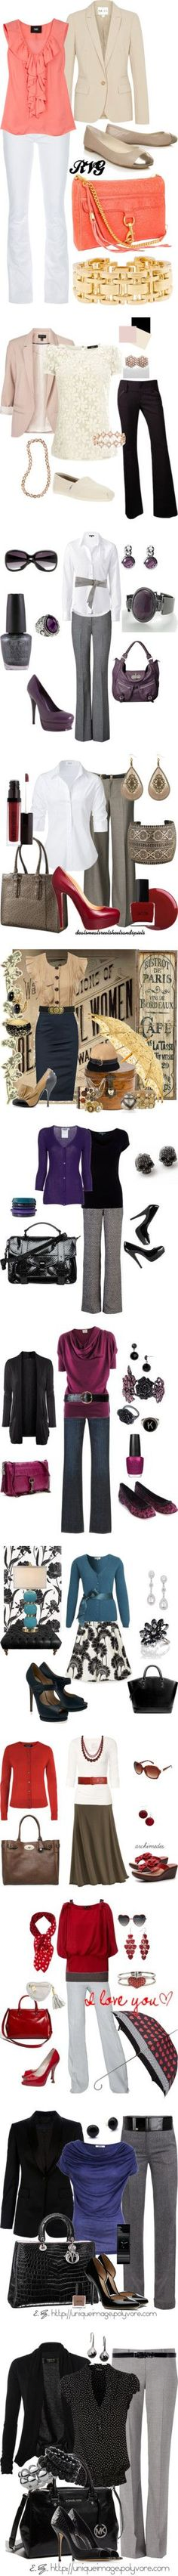 Cute work #Work Outfits for Men #Work Outfits for Women  http://work-outfits-for-women.kira.lemoncoin.org